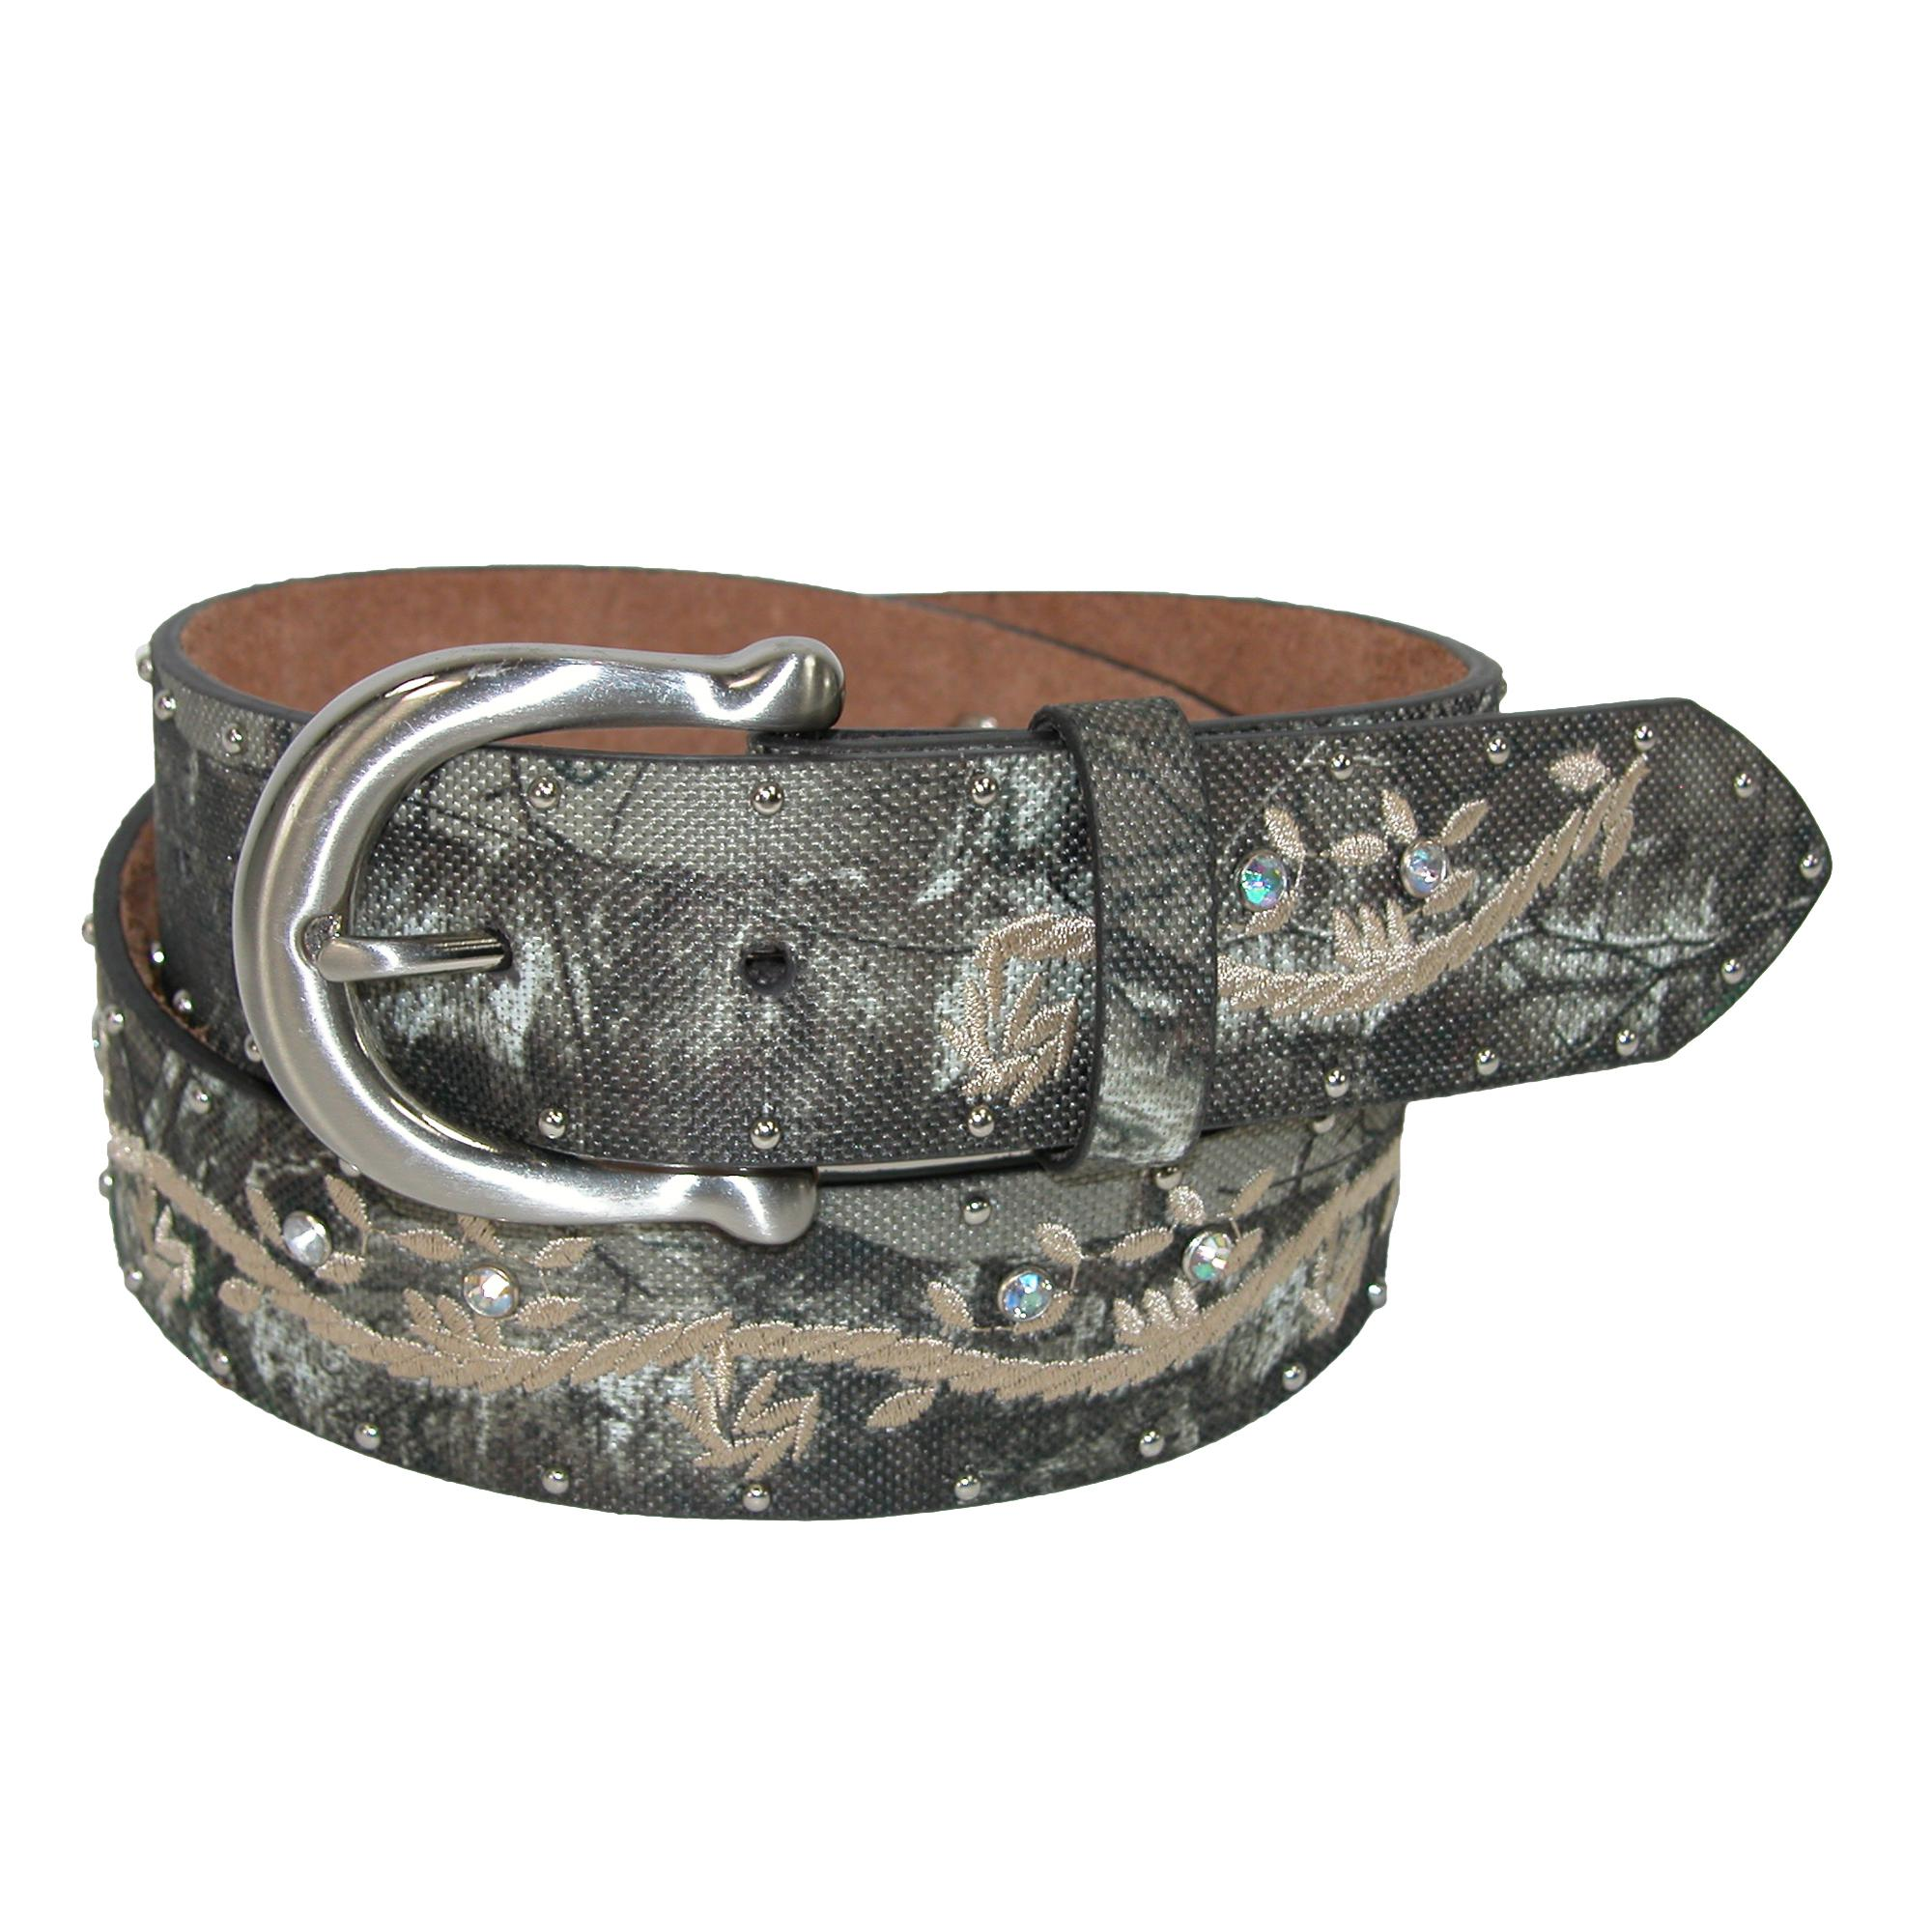 John Deere Womens Realtree Camo Canvas On Leather With Embroidery Belt